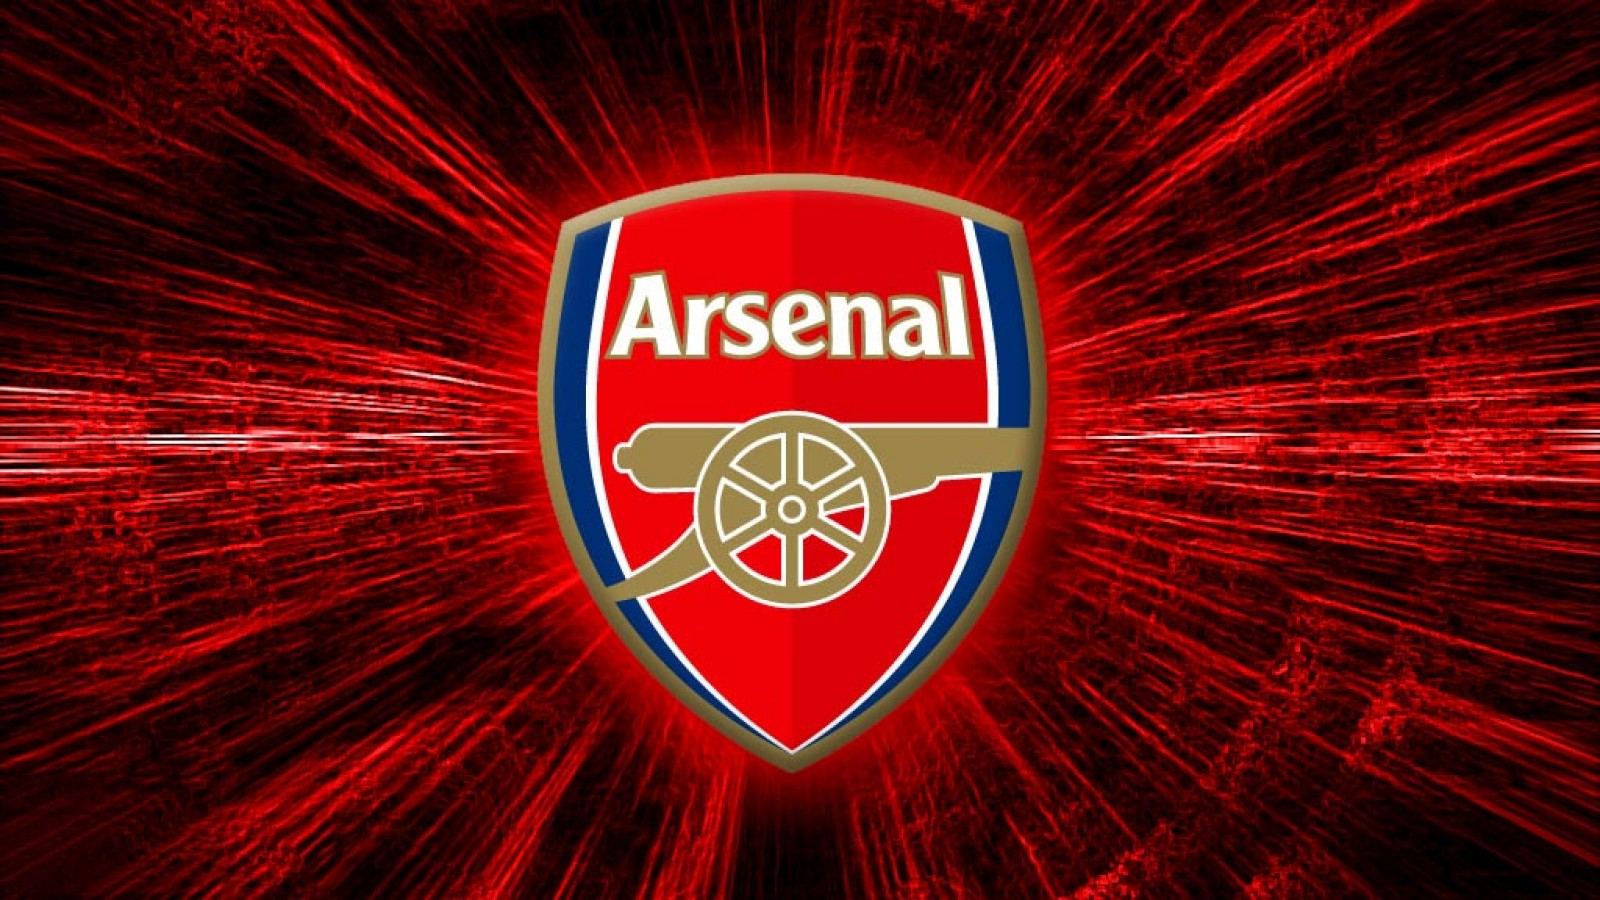 Arsenal Fc 3d Wallpapers Fc Arsenal Wallpaper 1600x900 34788